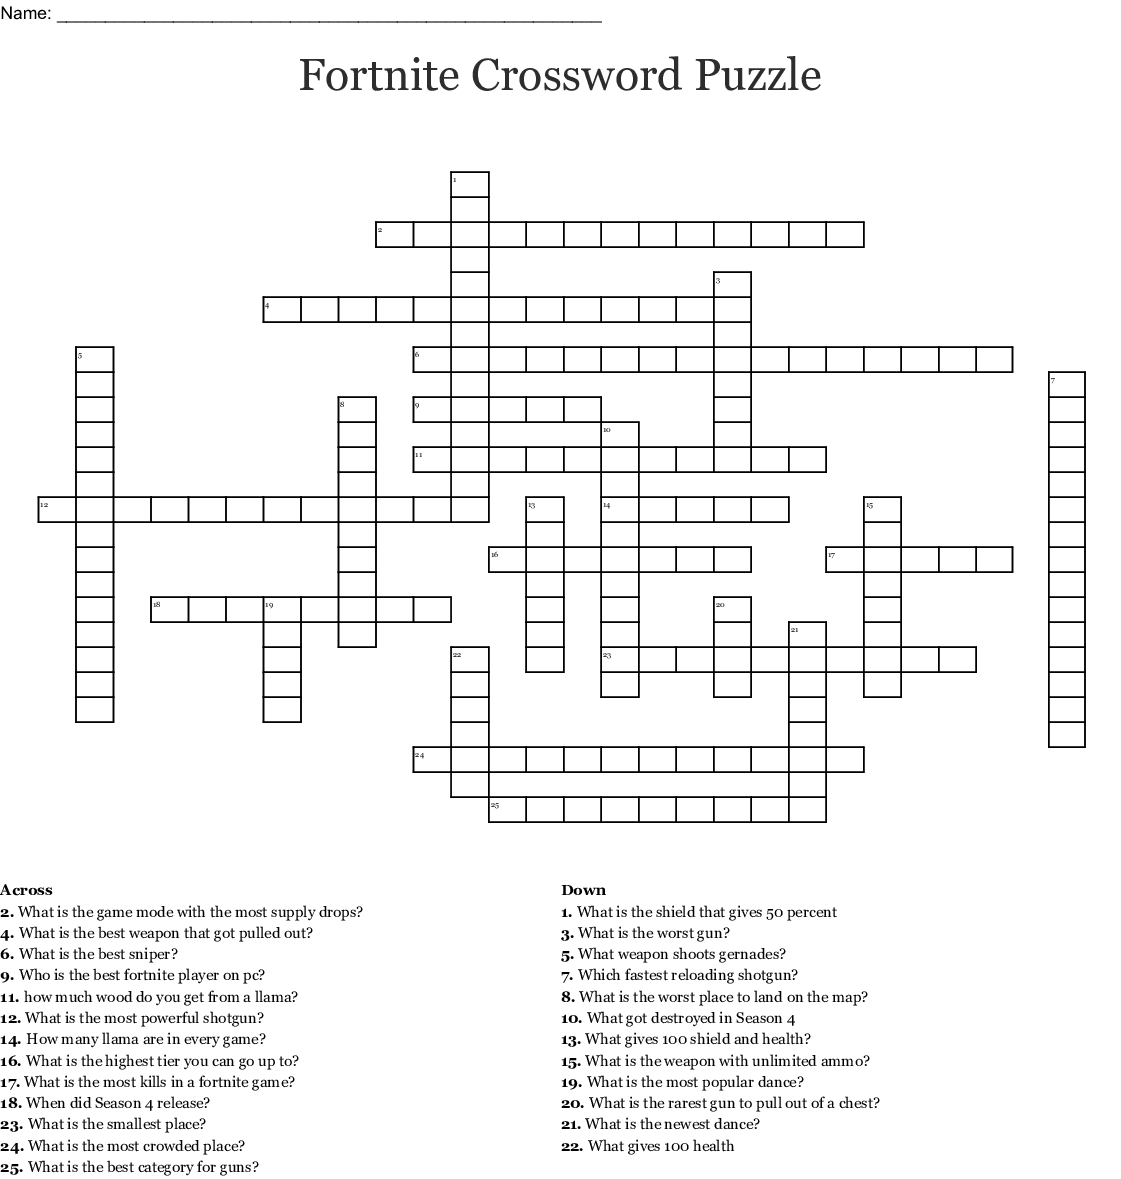 Fortnite Crossword Puzzle